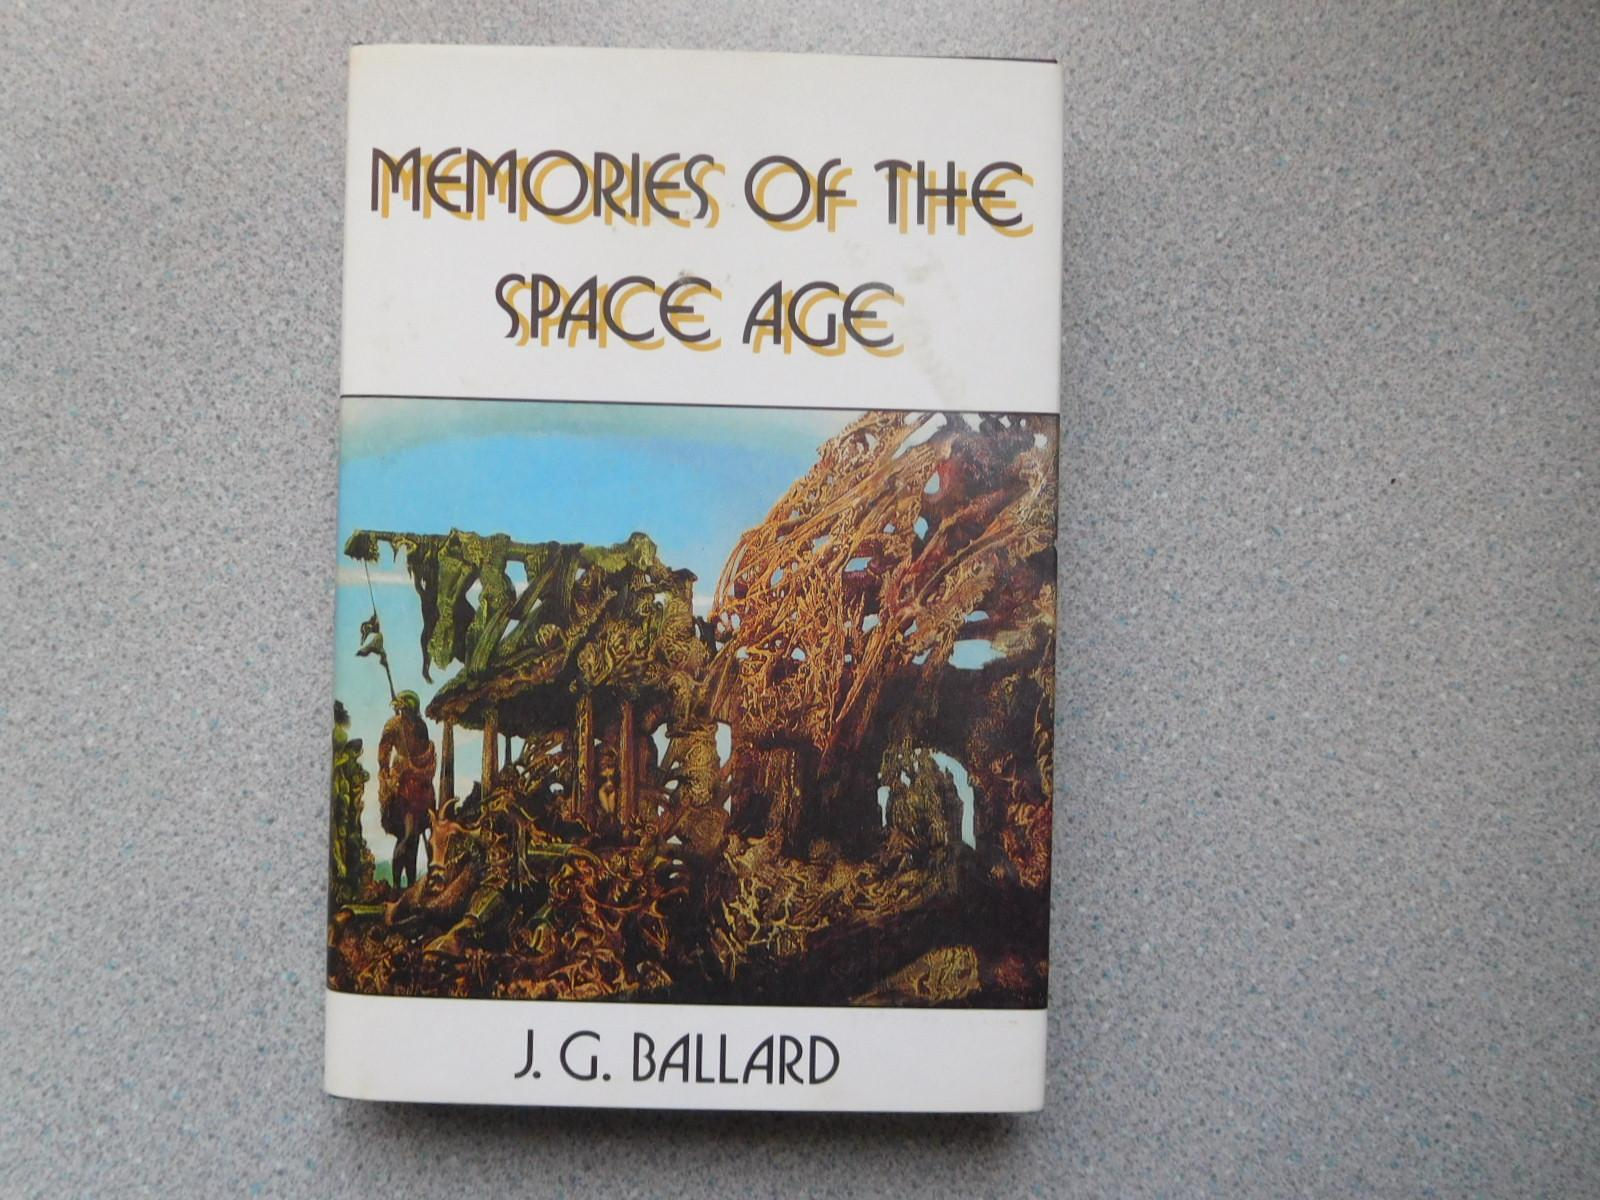 MEMORIES OF THE SPACE AGE (Very Fine Signed Copy) Ballard J.G. As New Hardcover Stunning collection of the author's eight Cape Canaveral stories, introduced with quotes from Homer, Johann Wolfgang von Goethe and J.G. Ballard. Imma